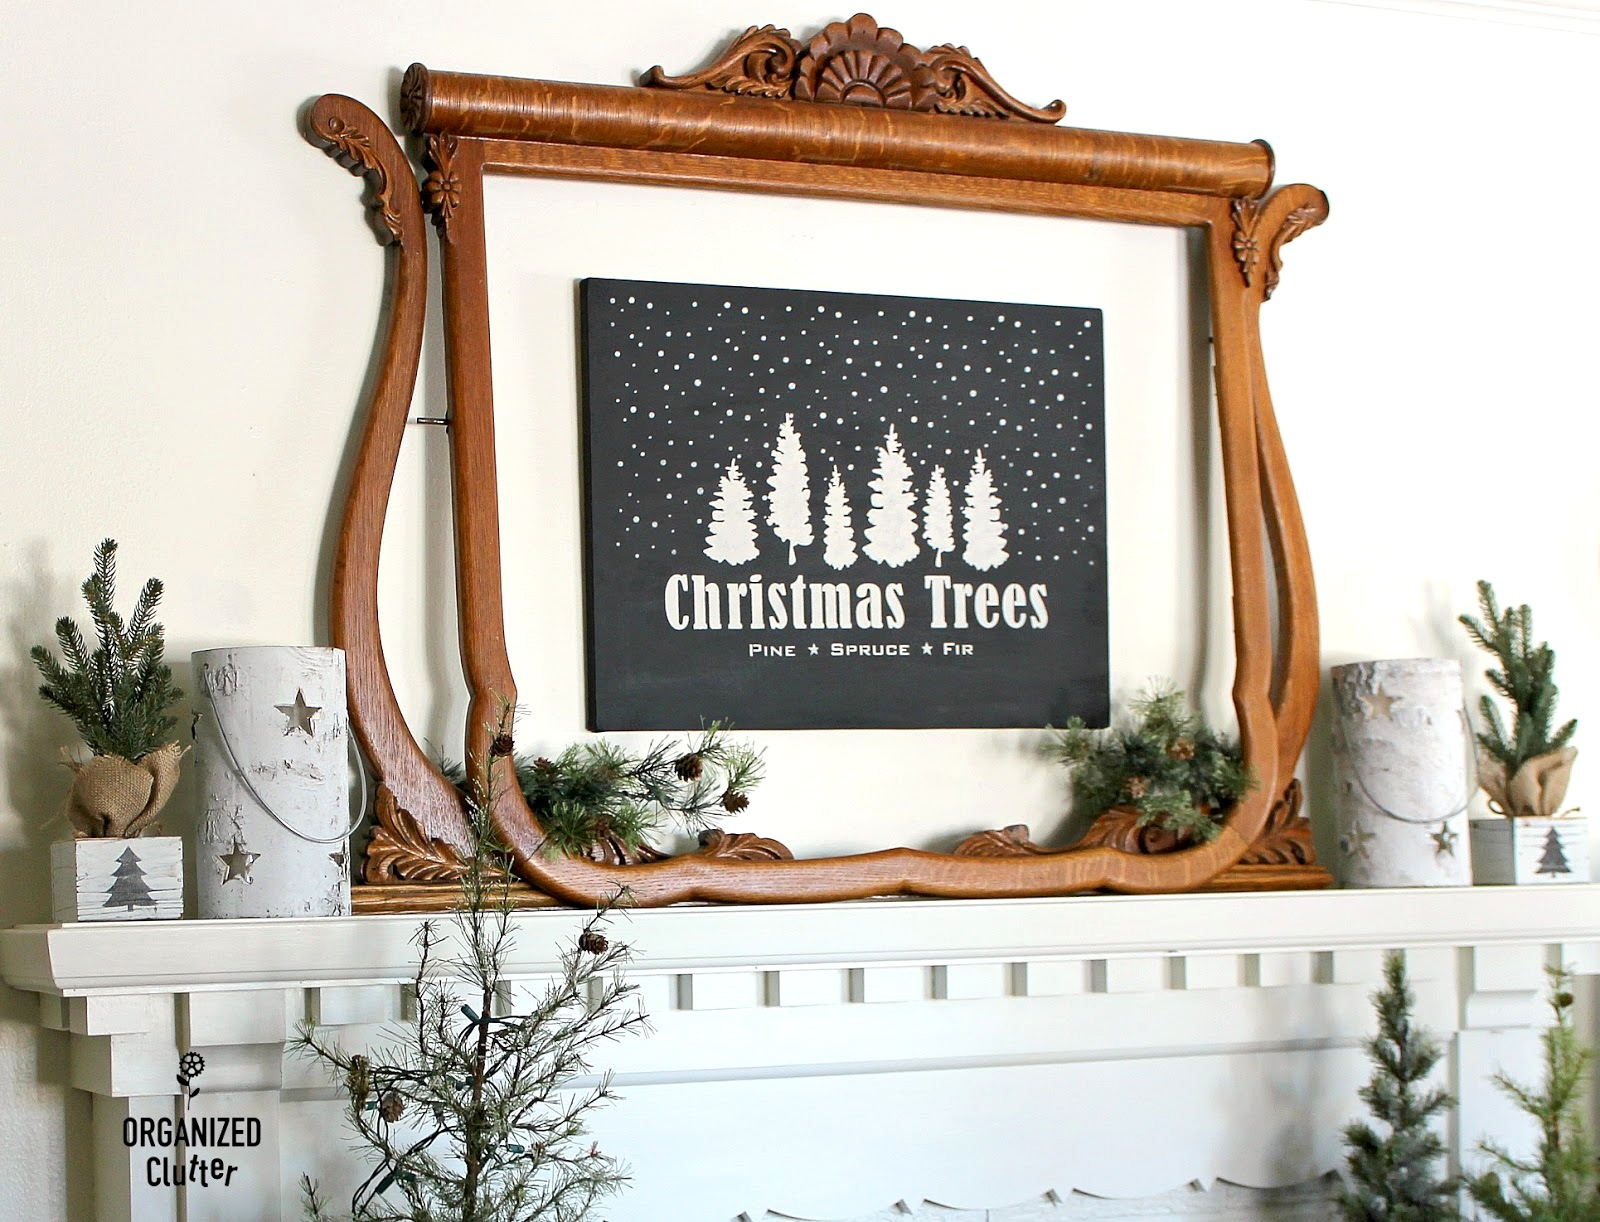 Christmas Trees black and white stenciled mantel sign by Organized Clutter, featured on Funky Junk Interiors